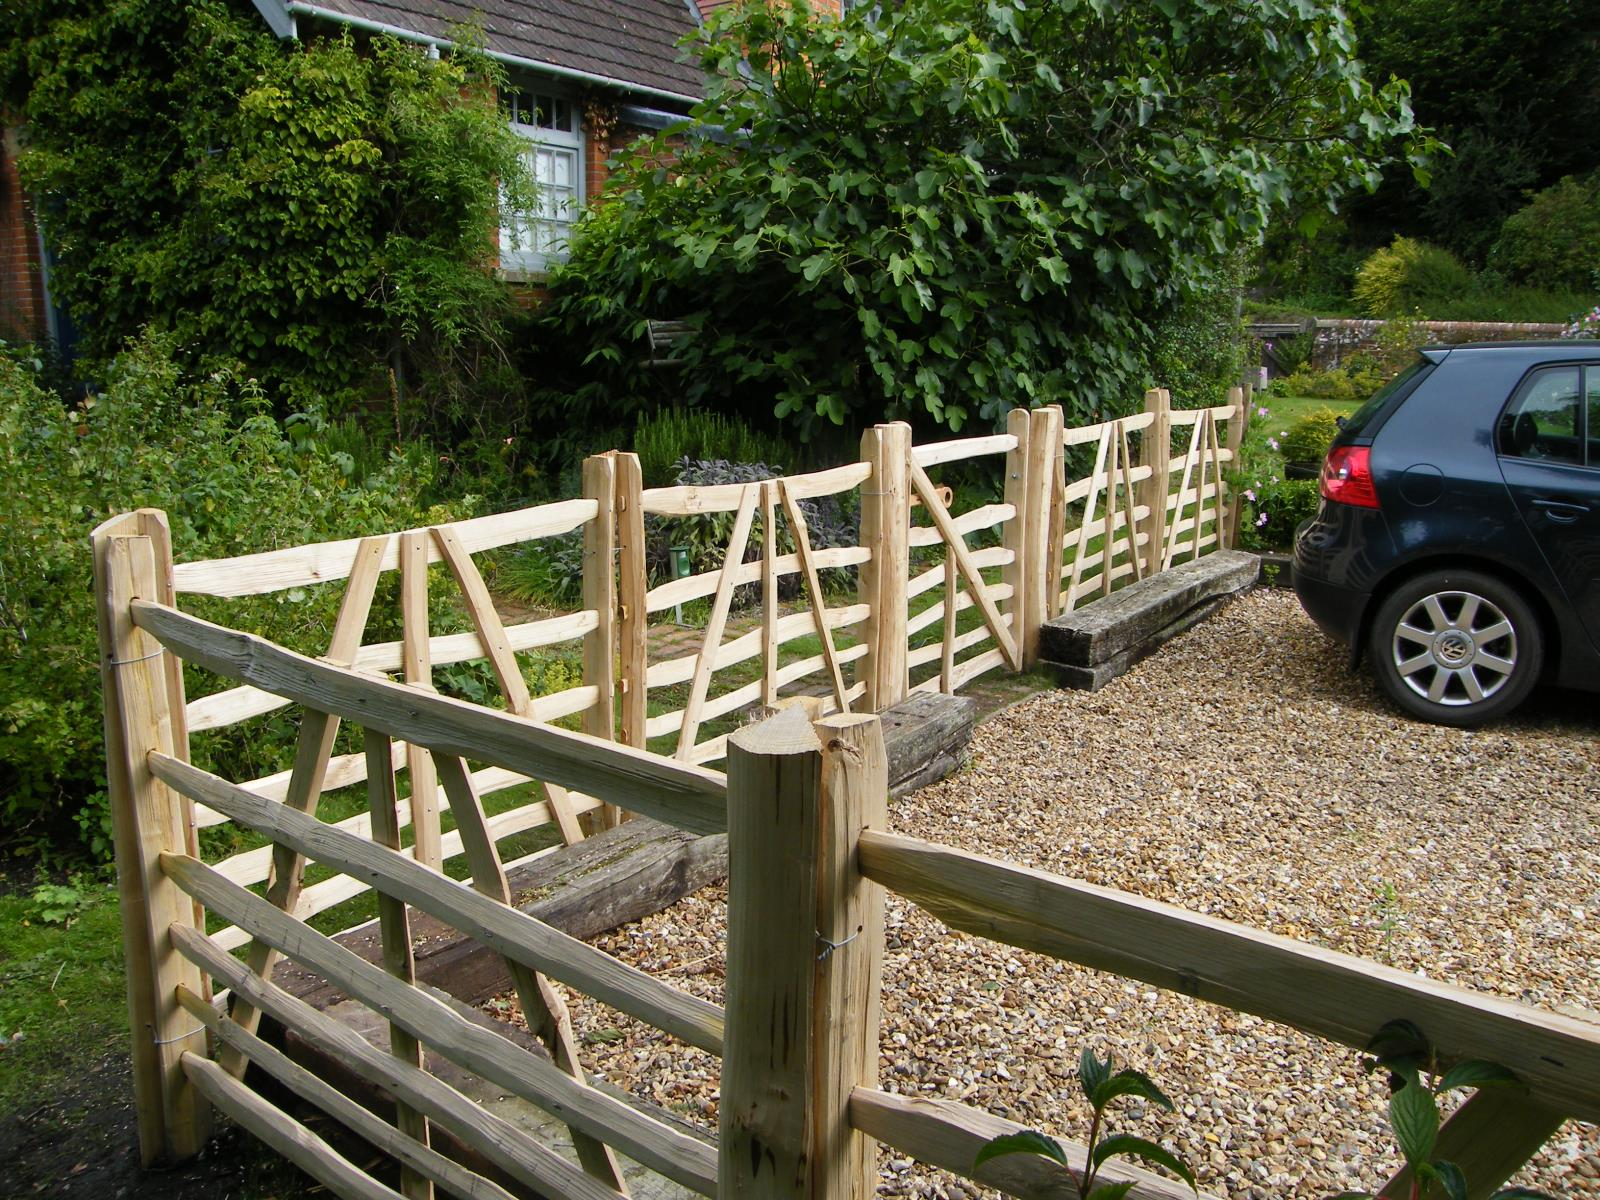 wooden fencing by fence makers, Wiltshire